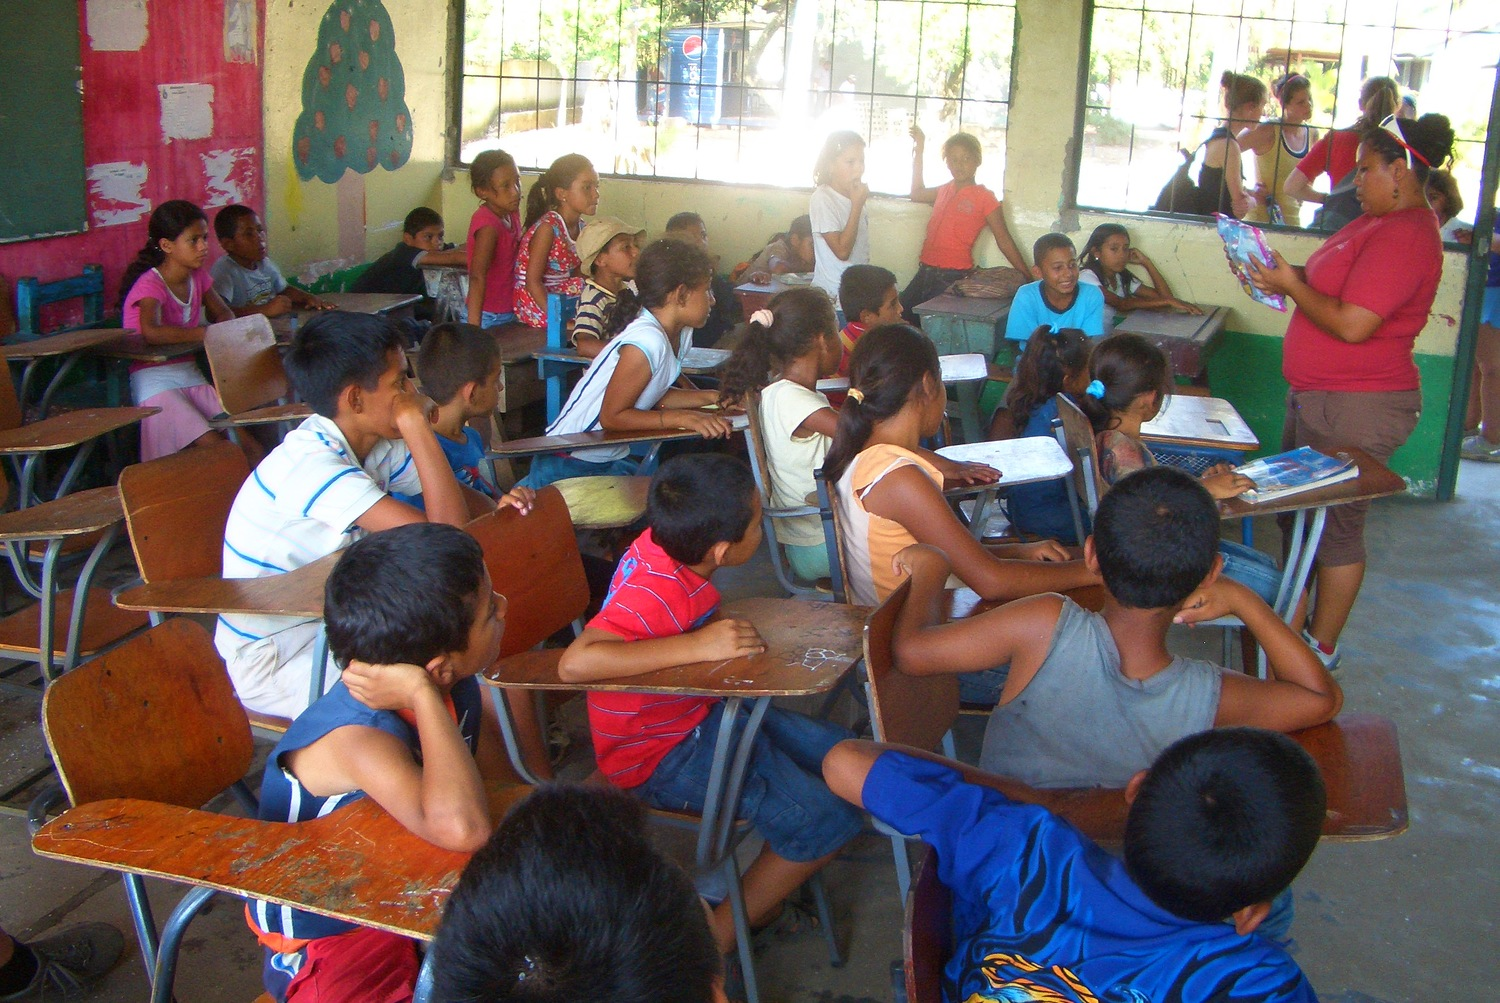 Spot the Voluntourists! Photo by: the Author.